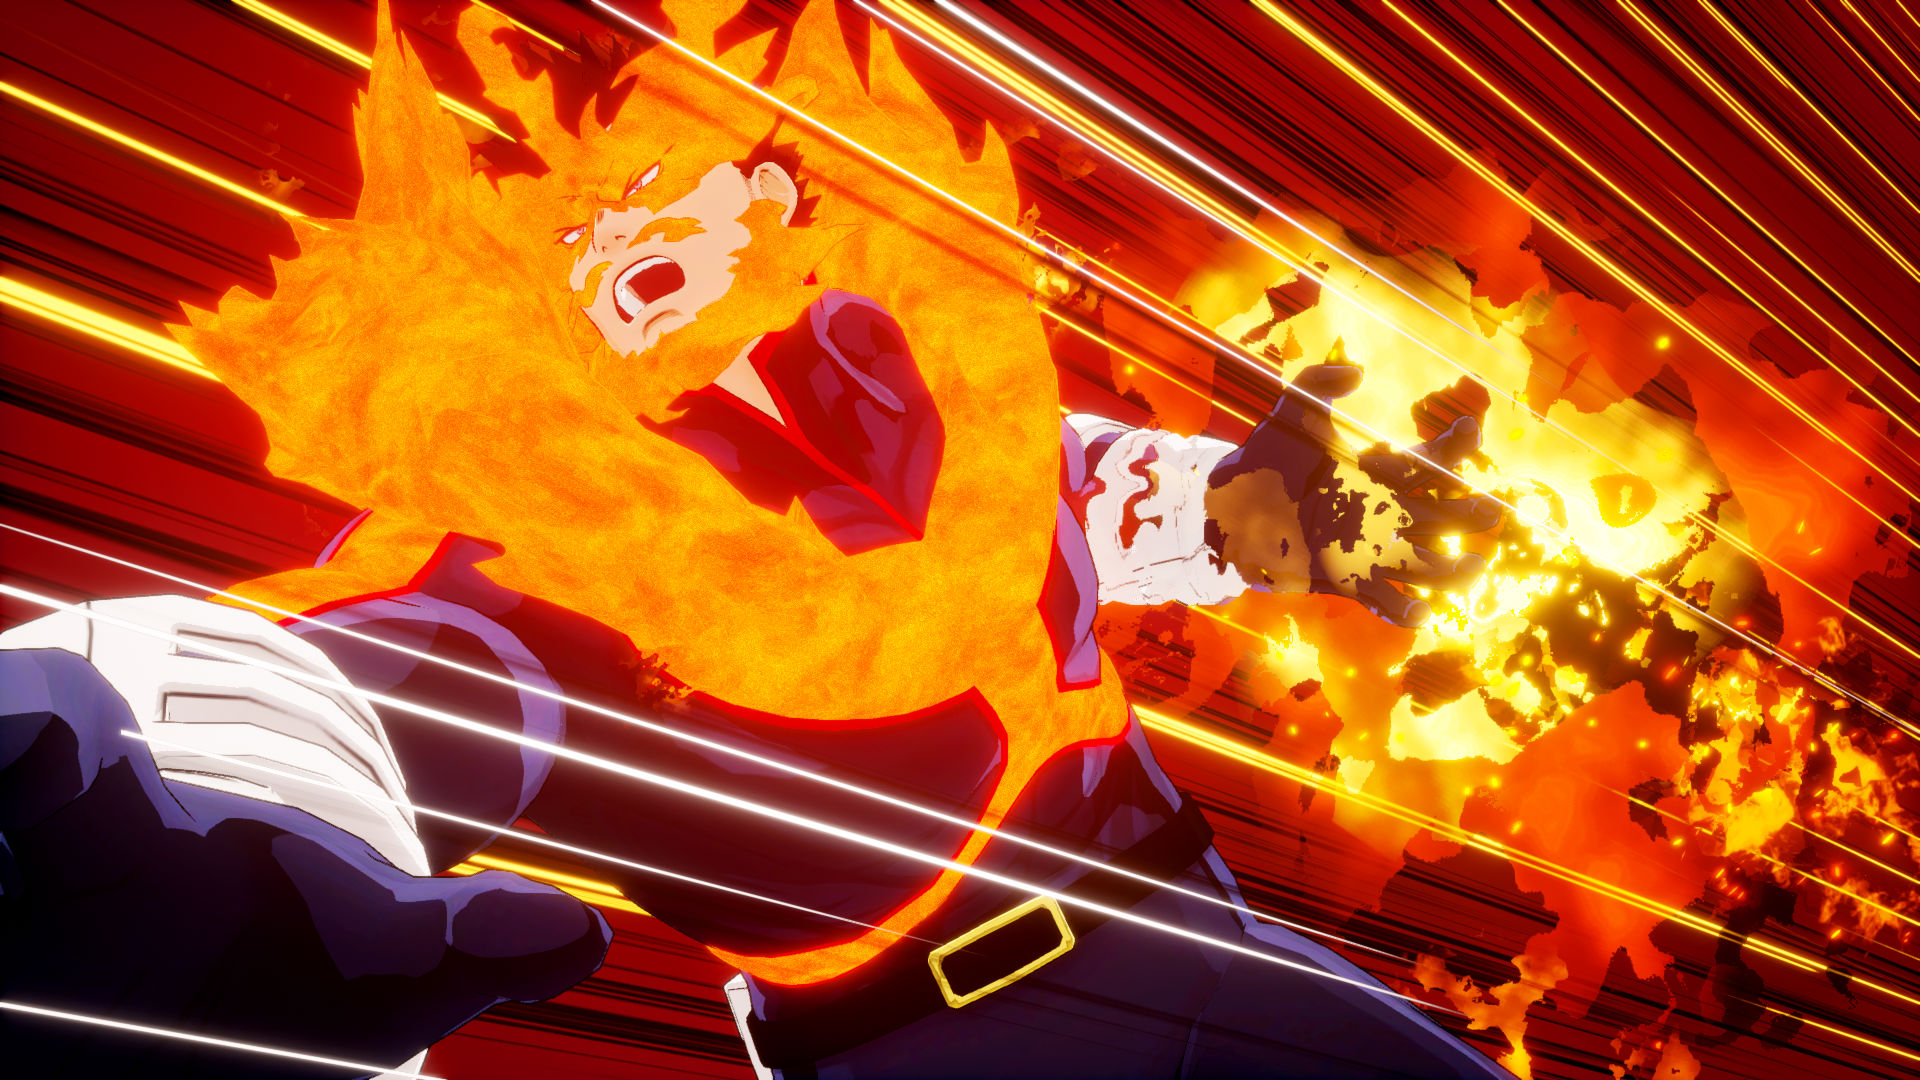 Endeavor is coming to the My Hero Academia game as DLC screenshot